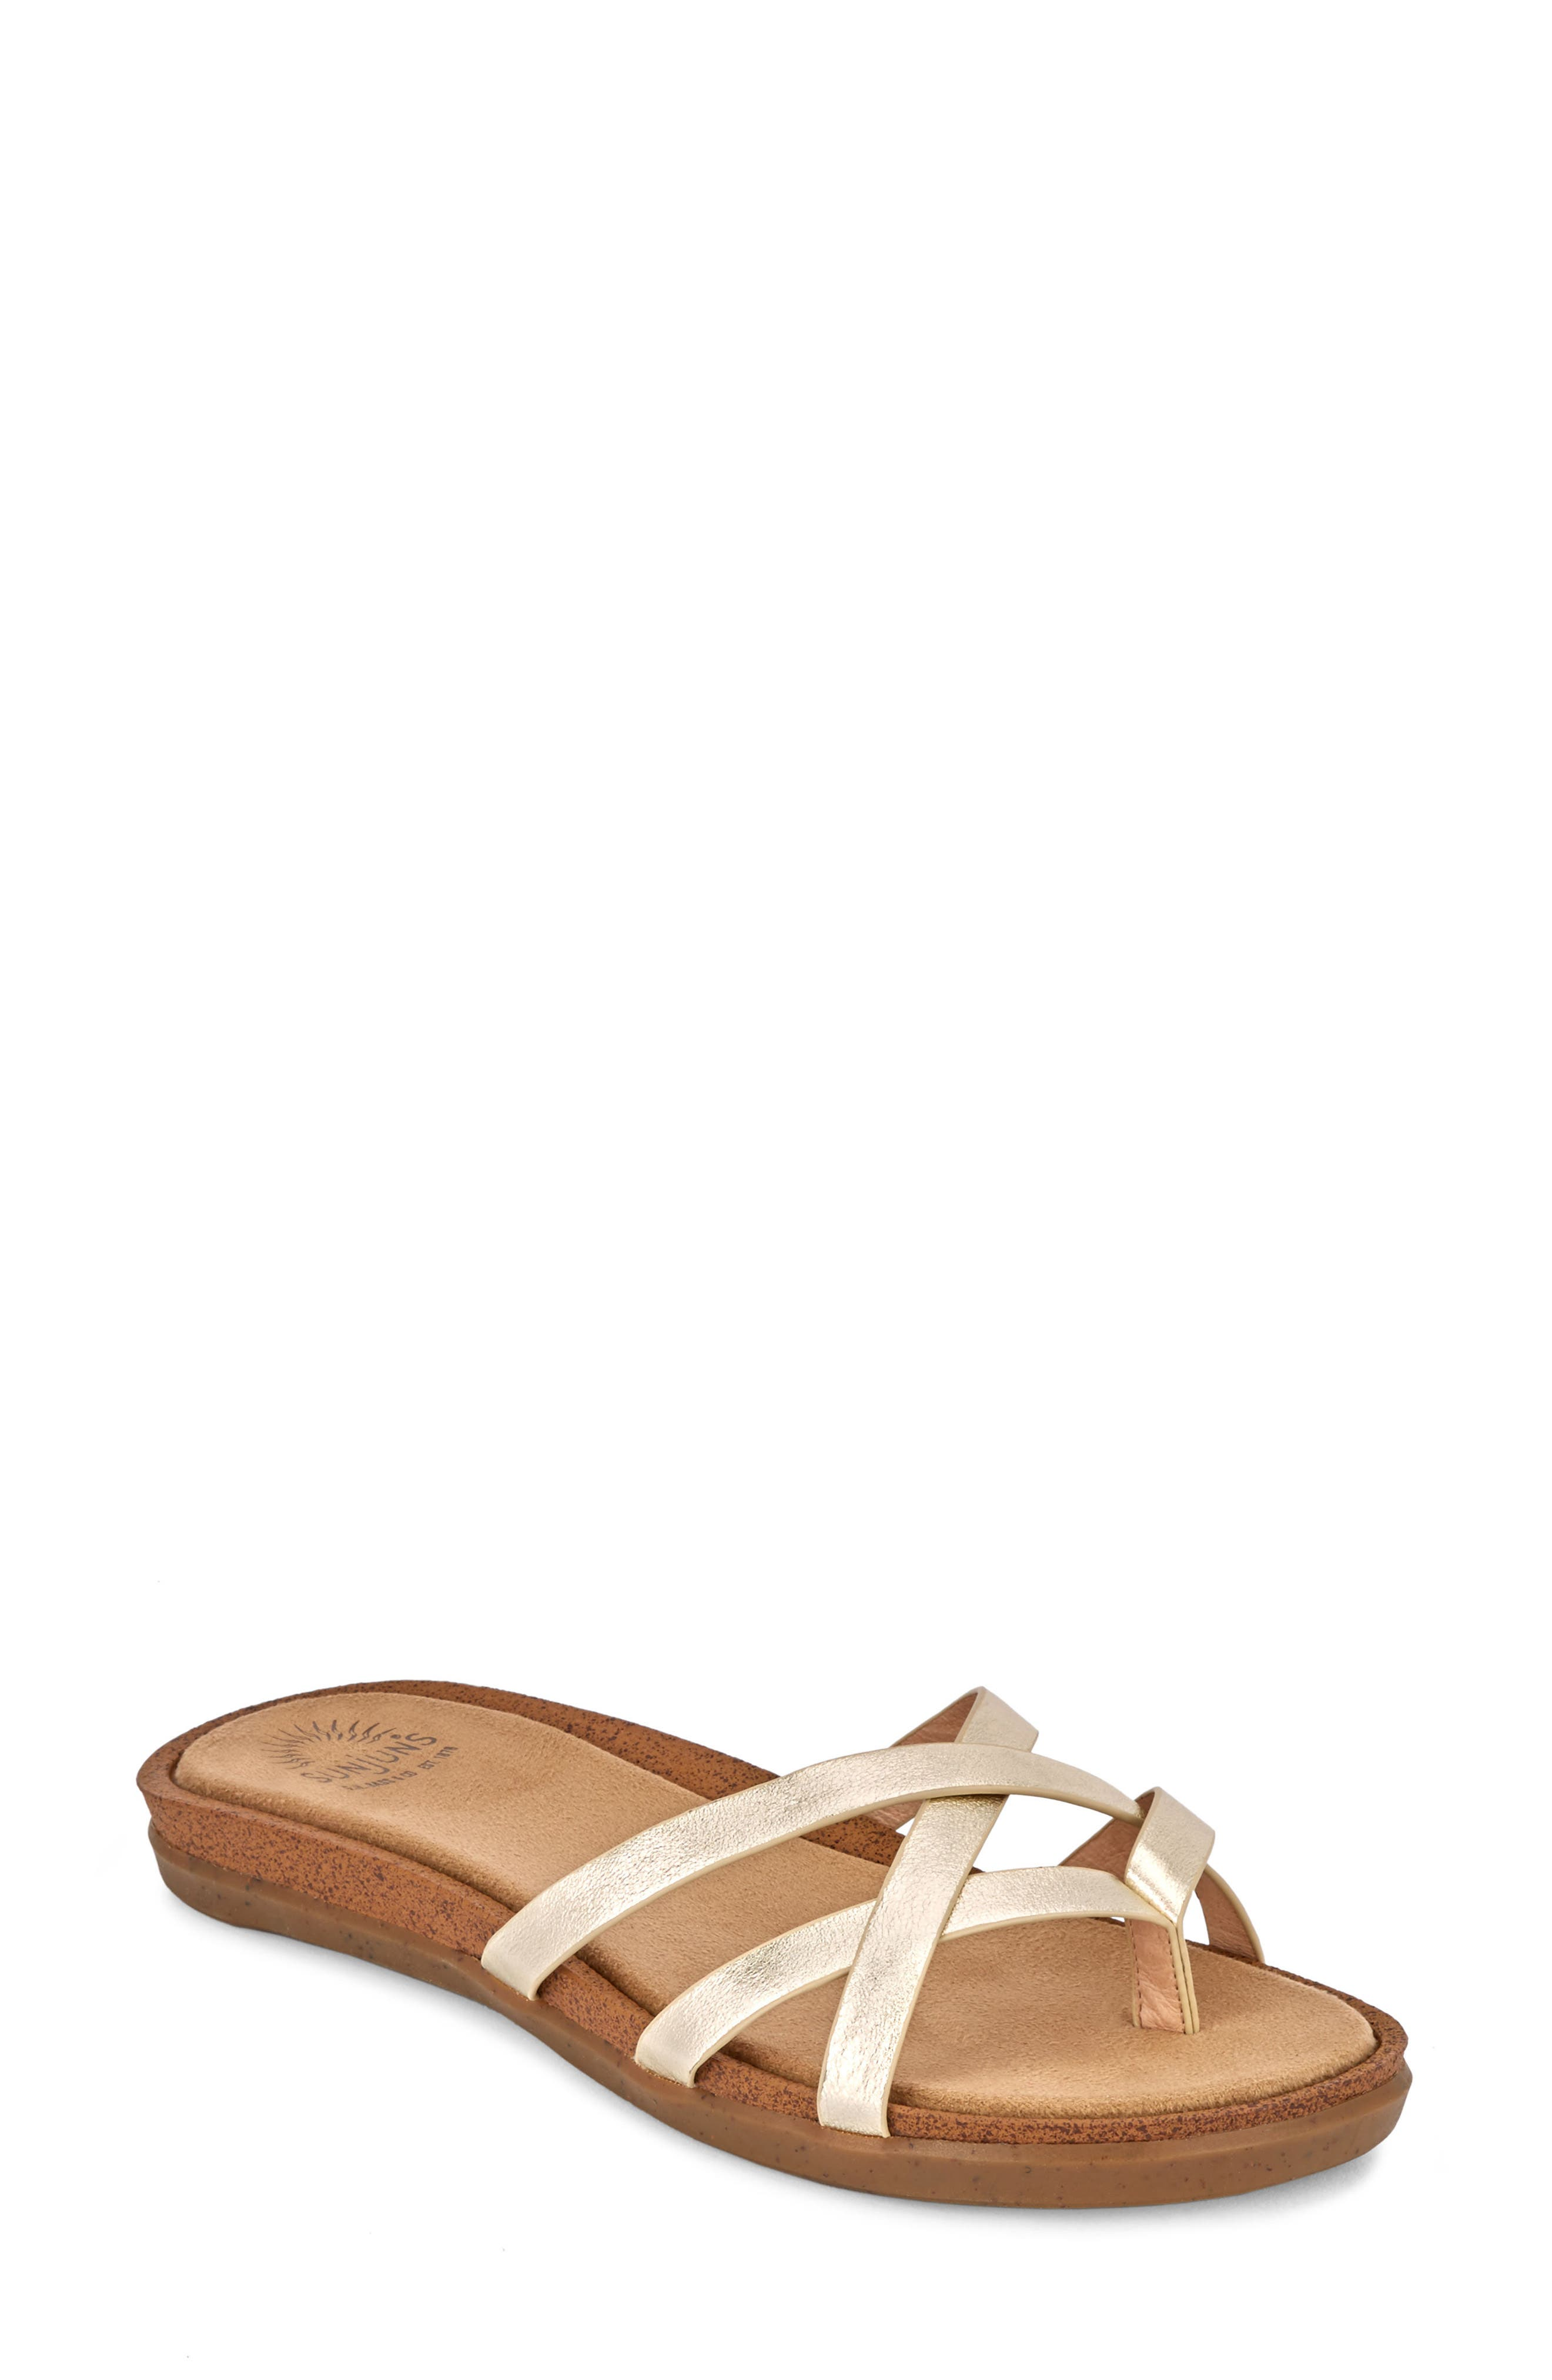 G.H. BASS & CO. Sharon Sandal in Gold Leather